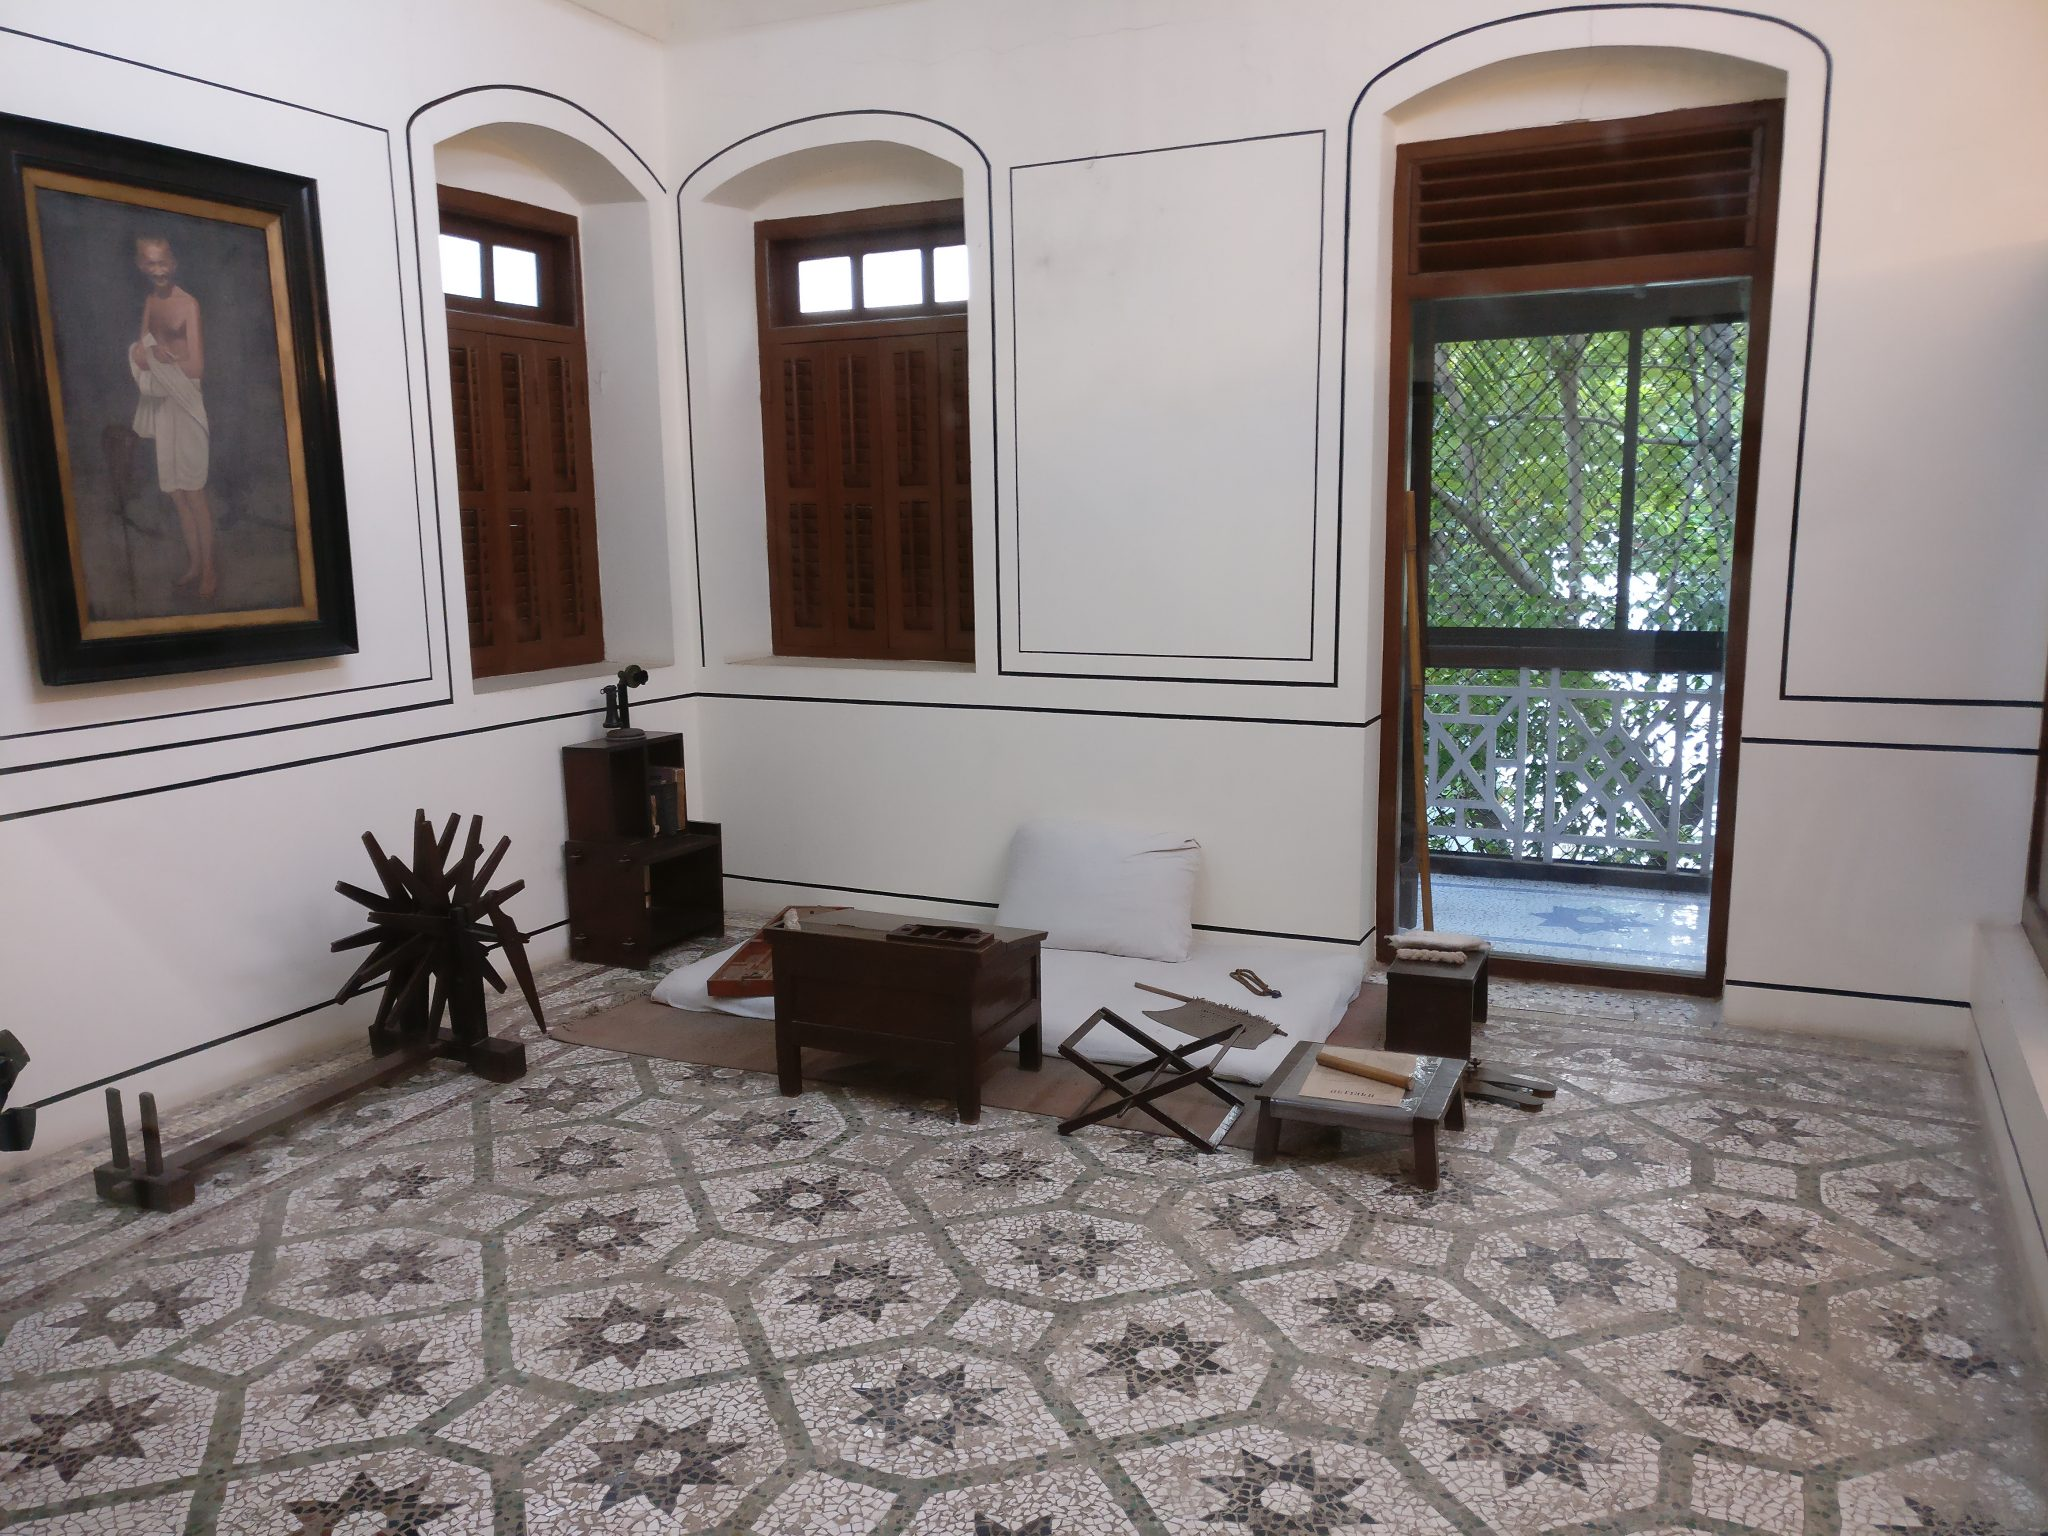 Gandhi's room, in the Gandhi Memorial Museum